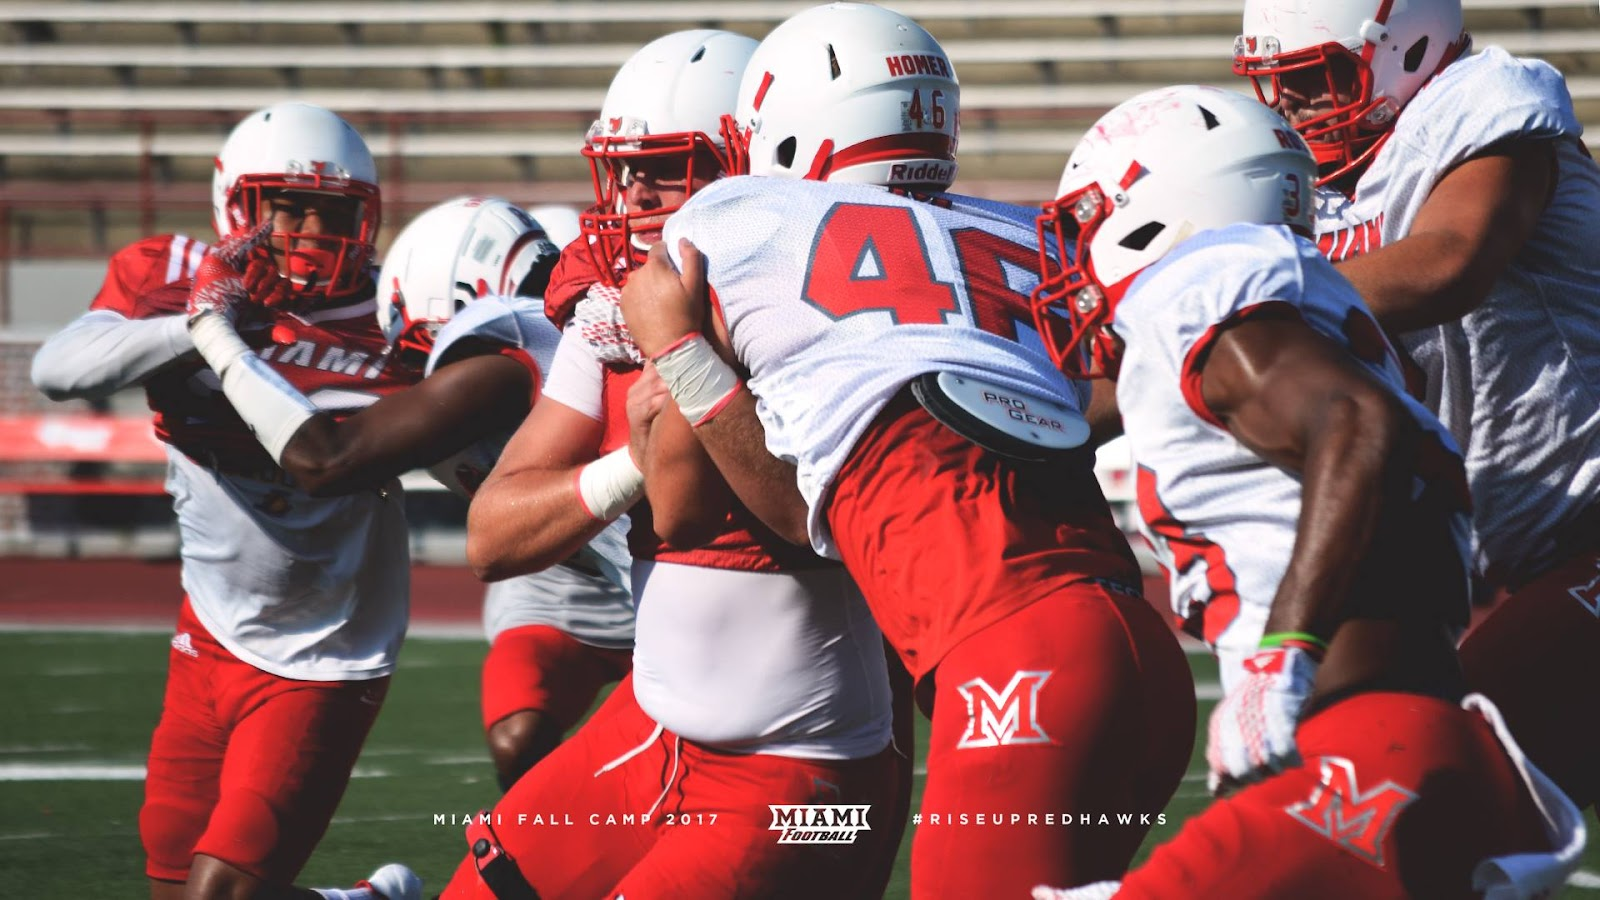 Miami RedHawks football players tackling each other during practice